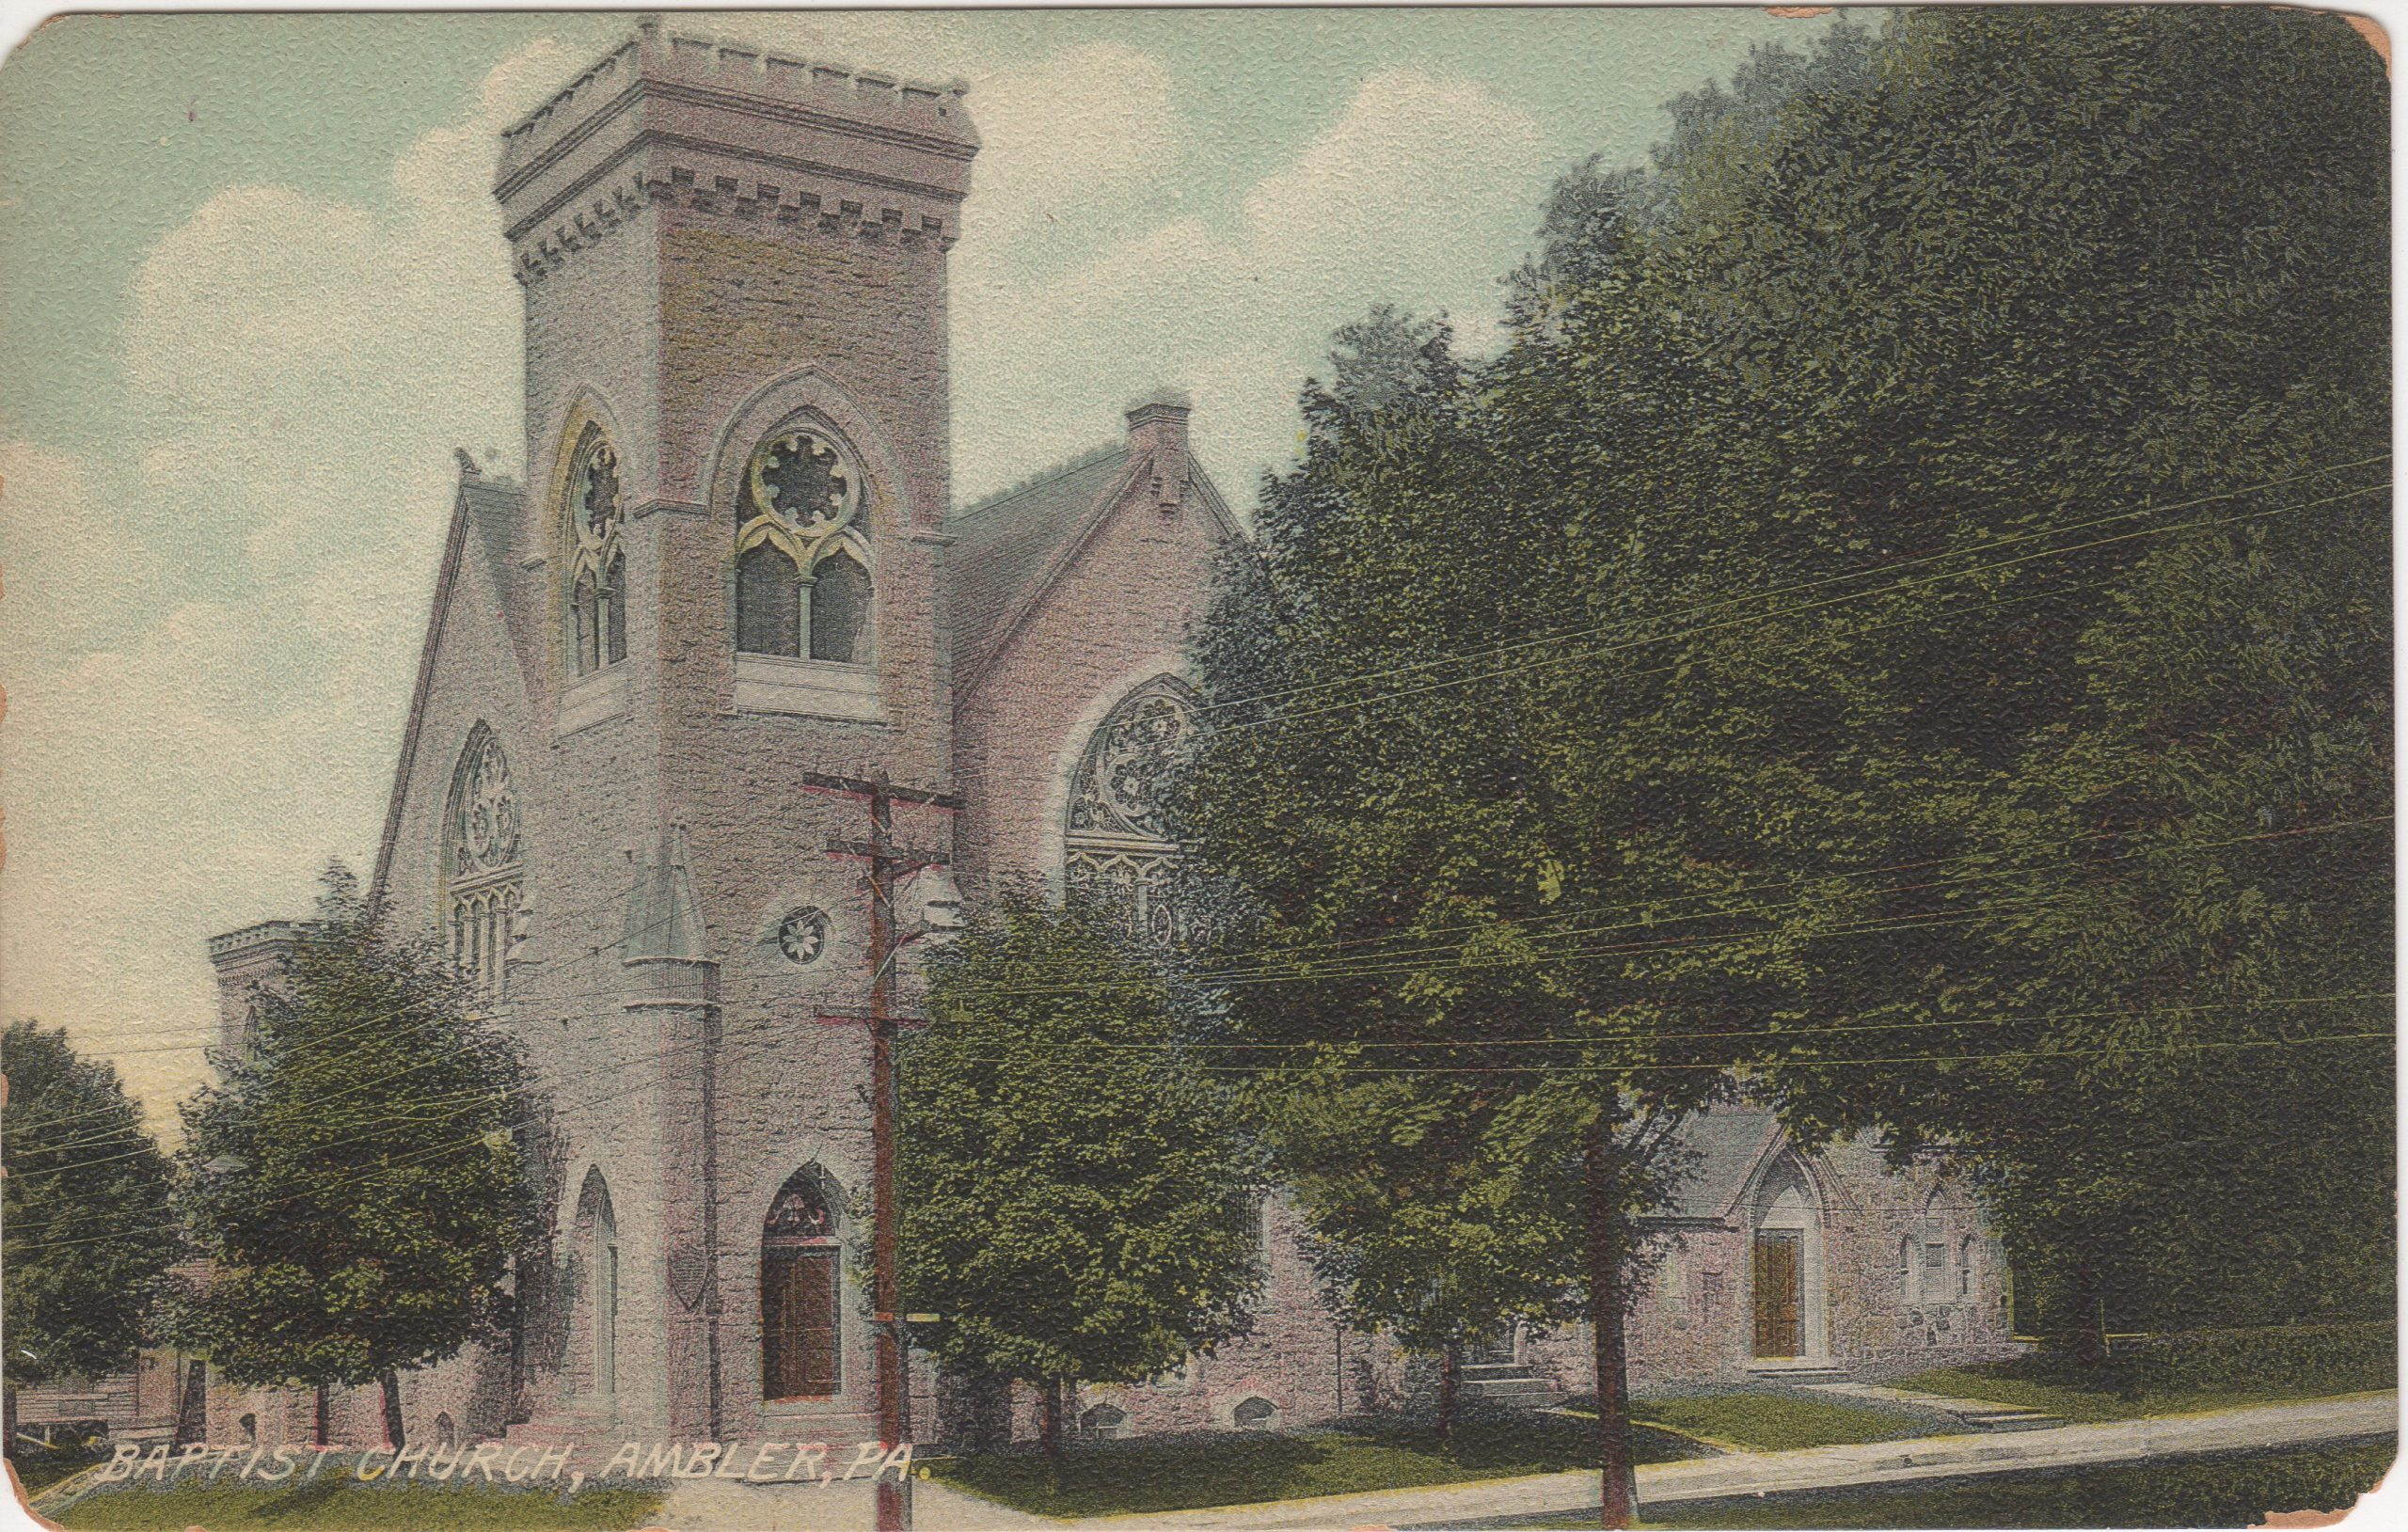 4125.9 Ambler Pa Postcard_Mt Pleasant Baptist Church (2)